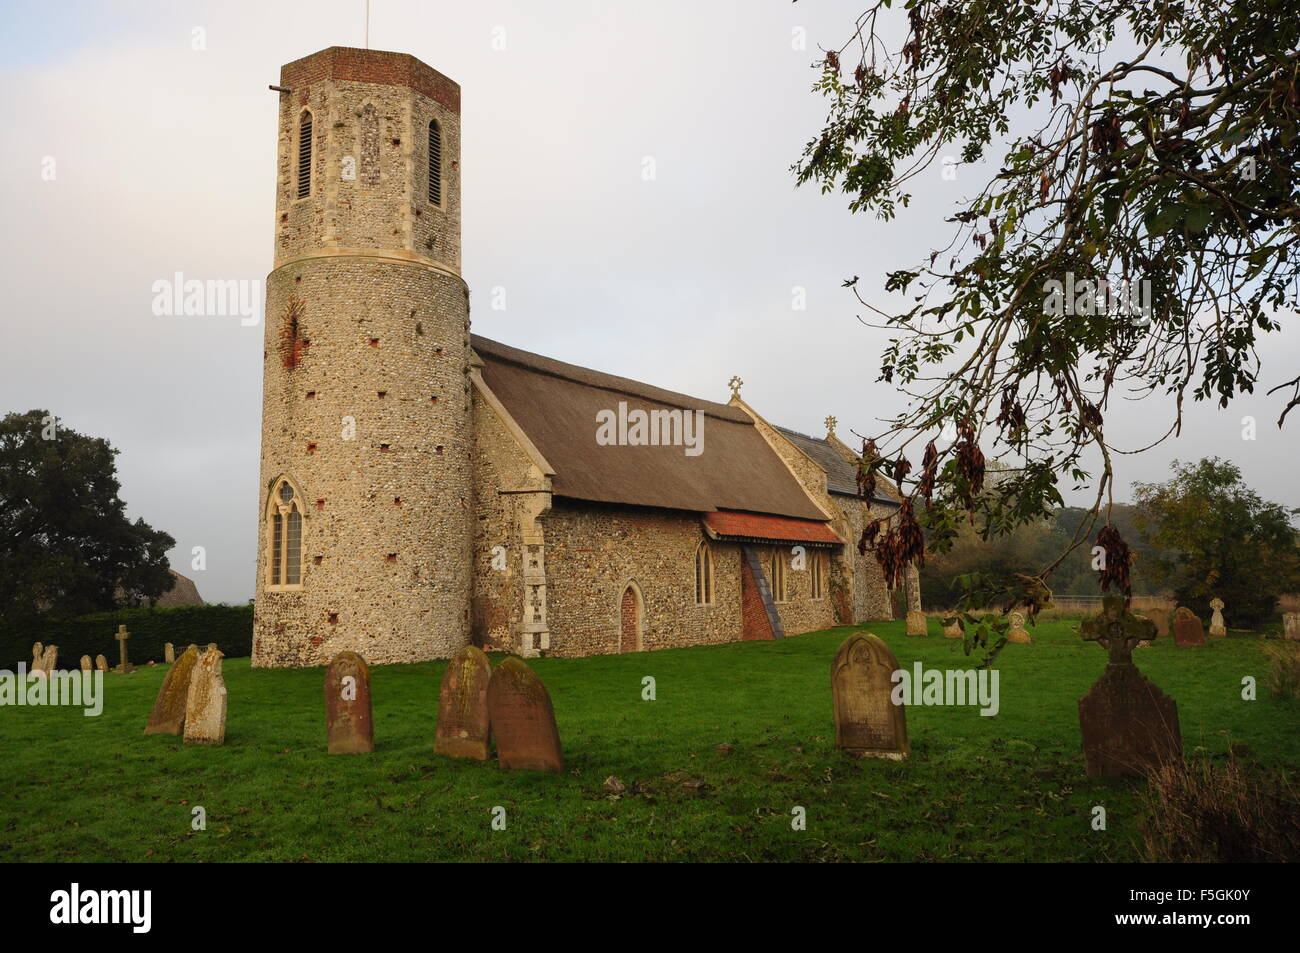 St Mary's church West Somerton Norfolk England UK - Stock Image